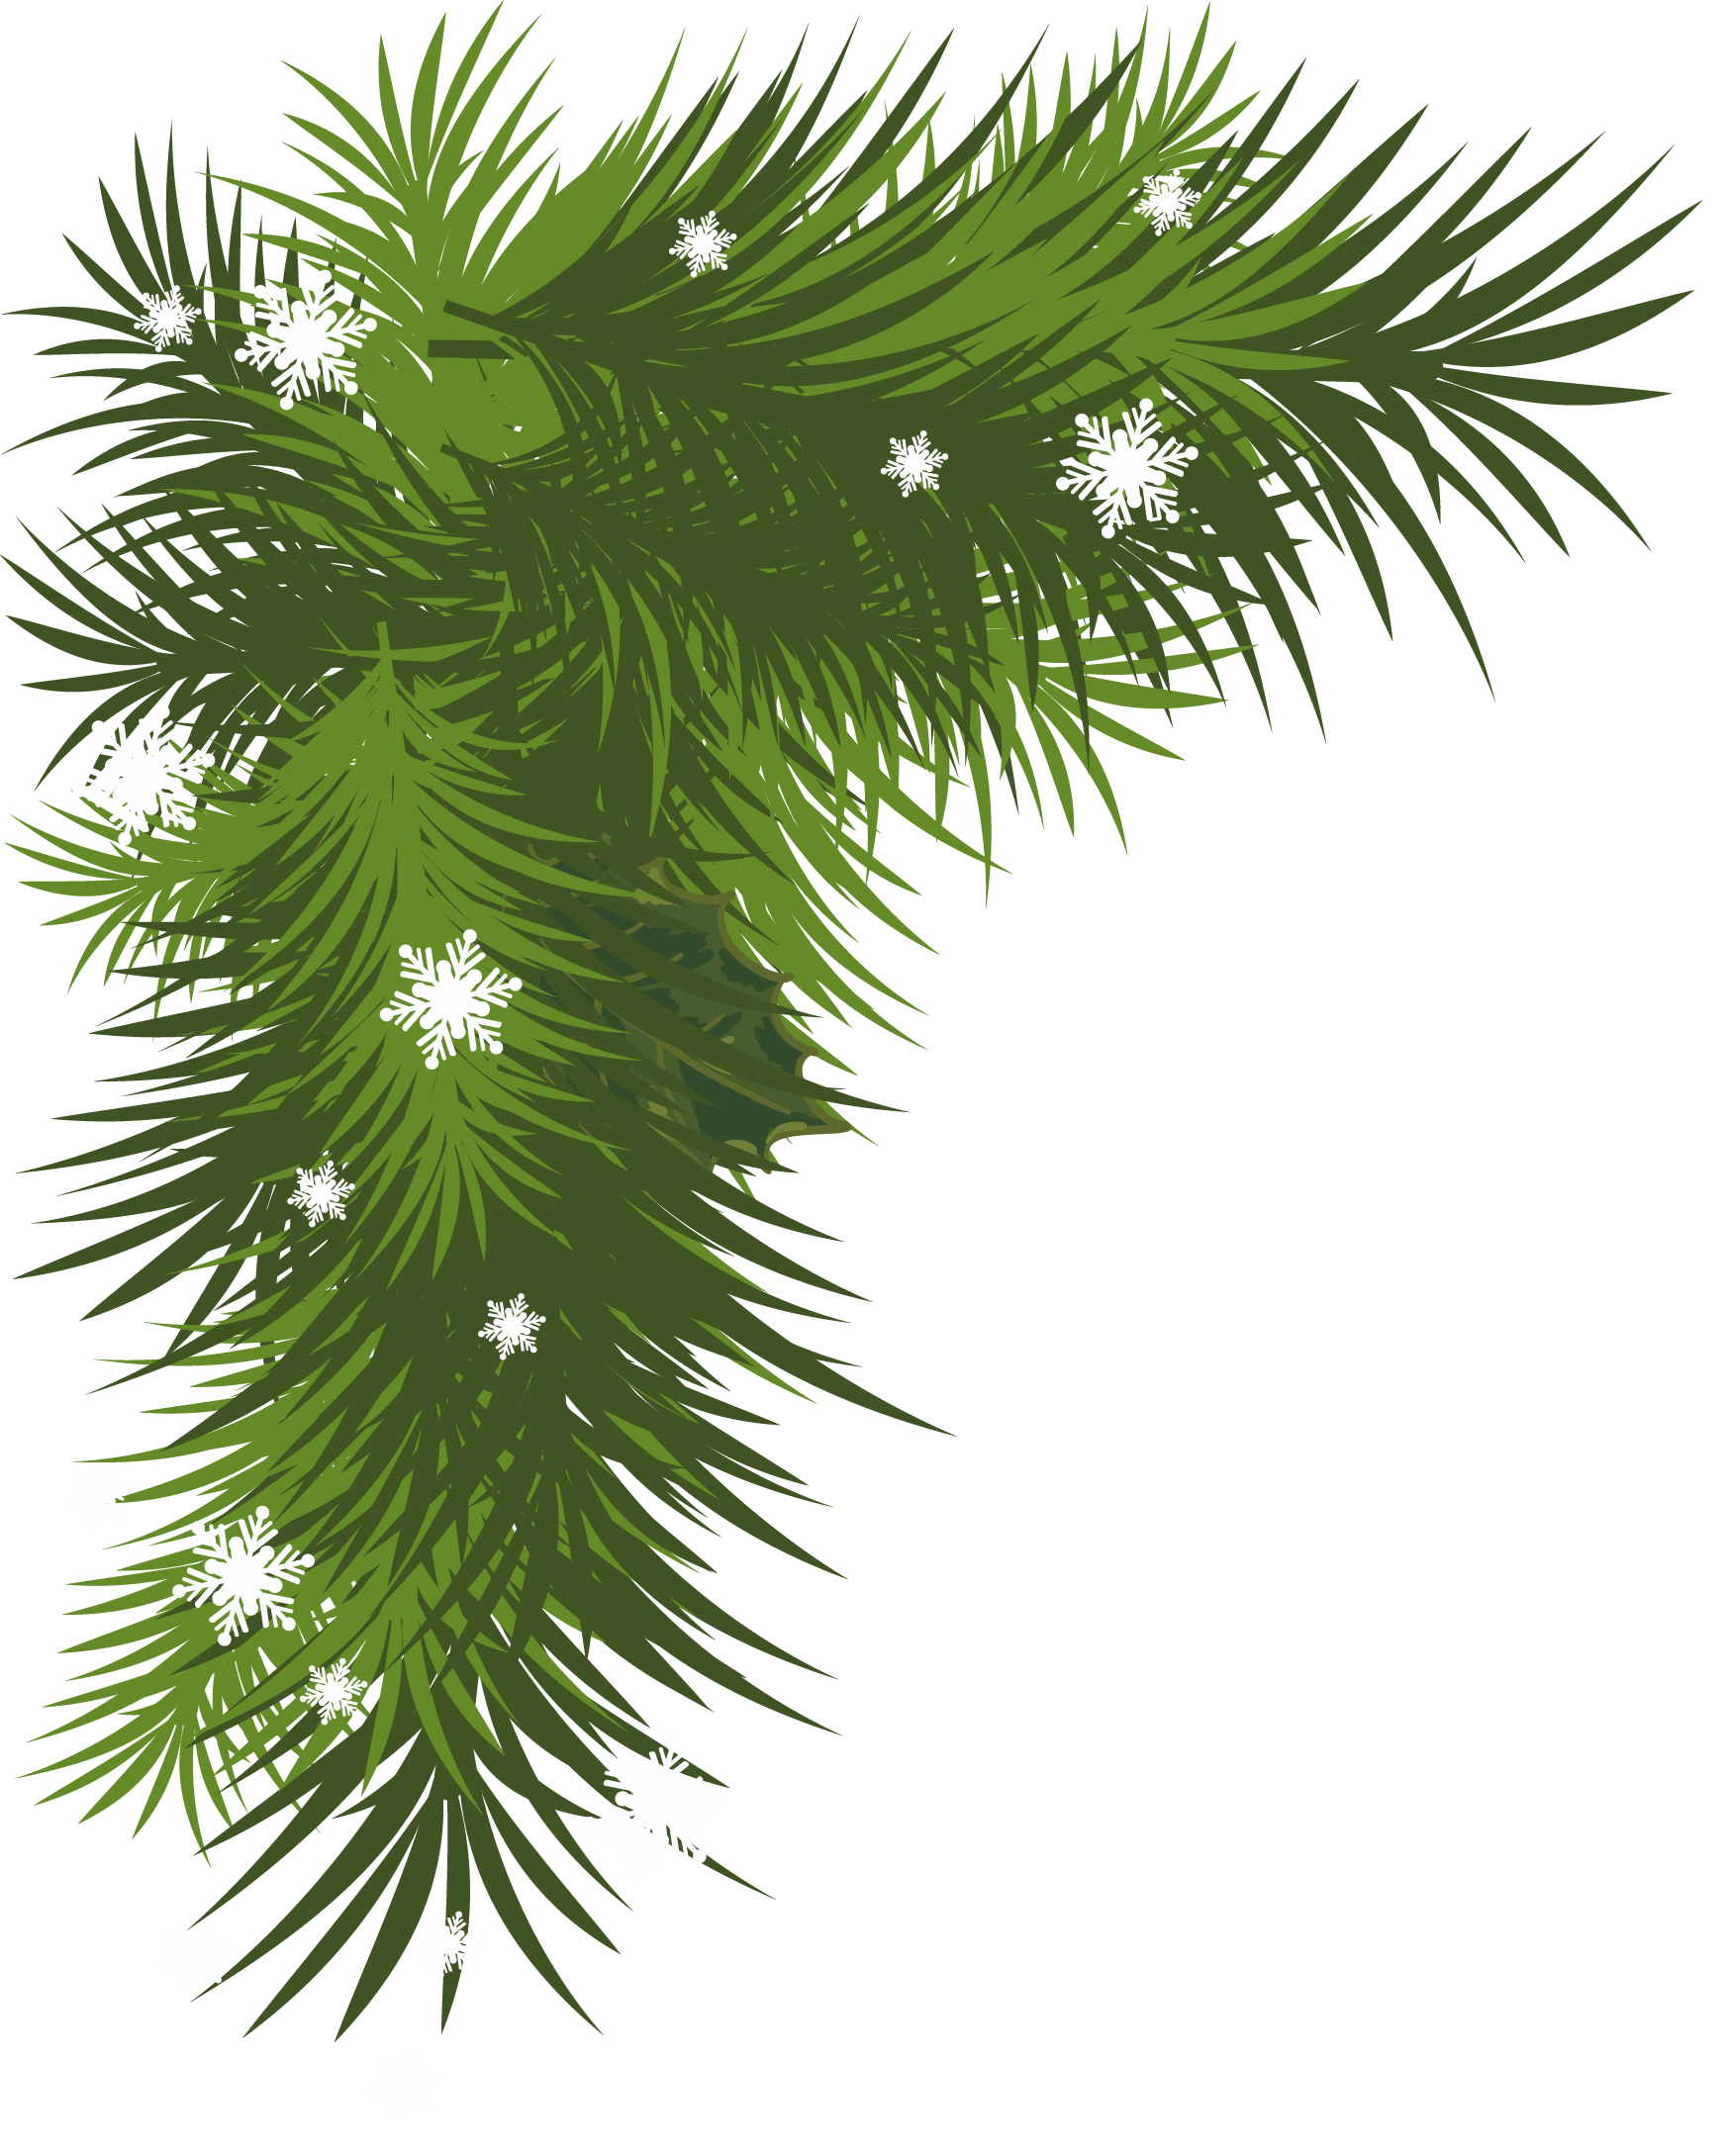 Christmas bough clipart picture library Snowy Pine Bough Clipart picture library